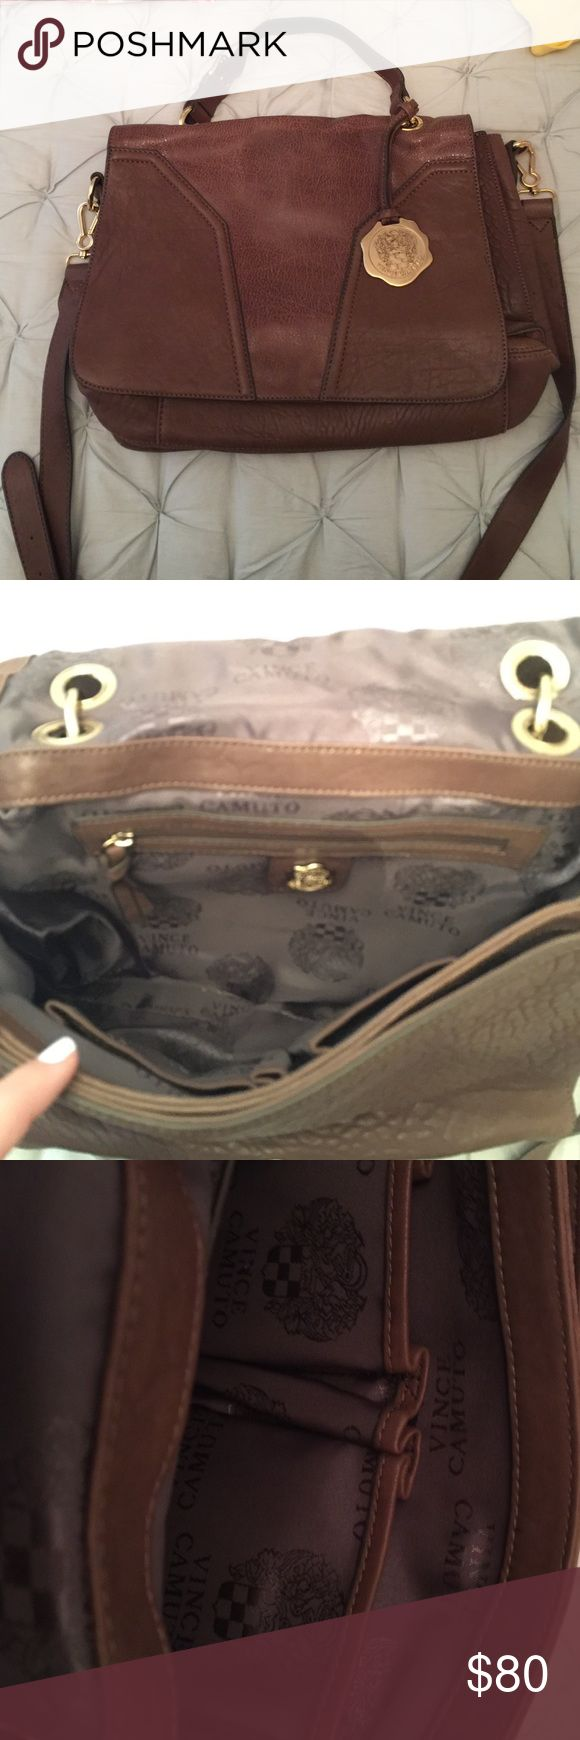 Vince Camuto Bag Brown leather bag big and spacious. Back has a zipper and fits a big ipad very good condition never used!! Vince Camuto Bags Crossbody Bags